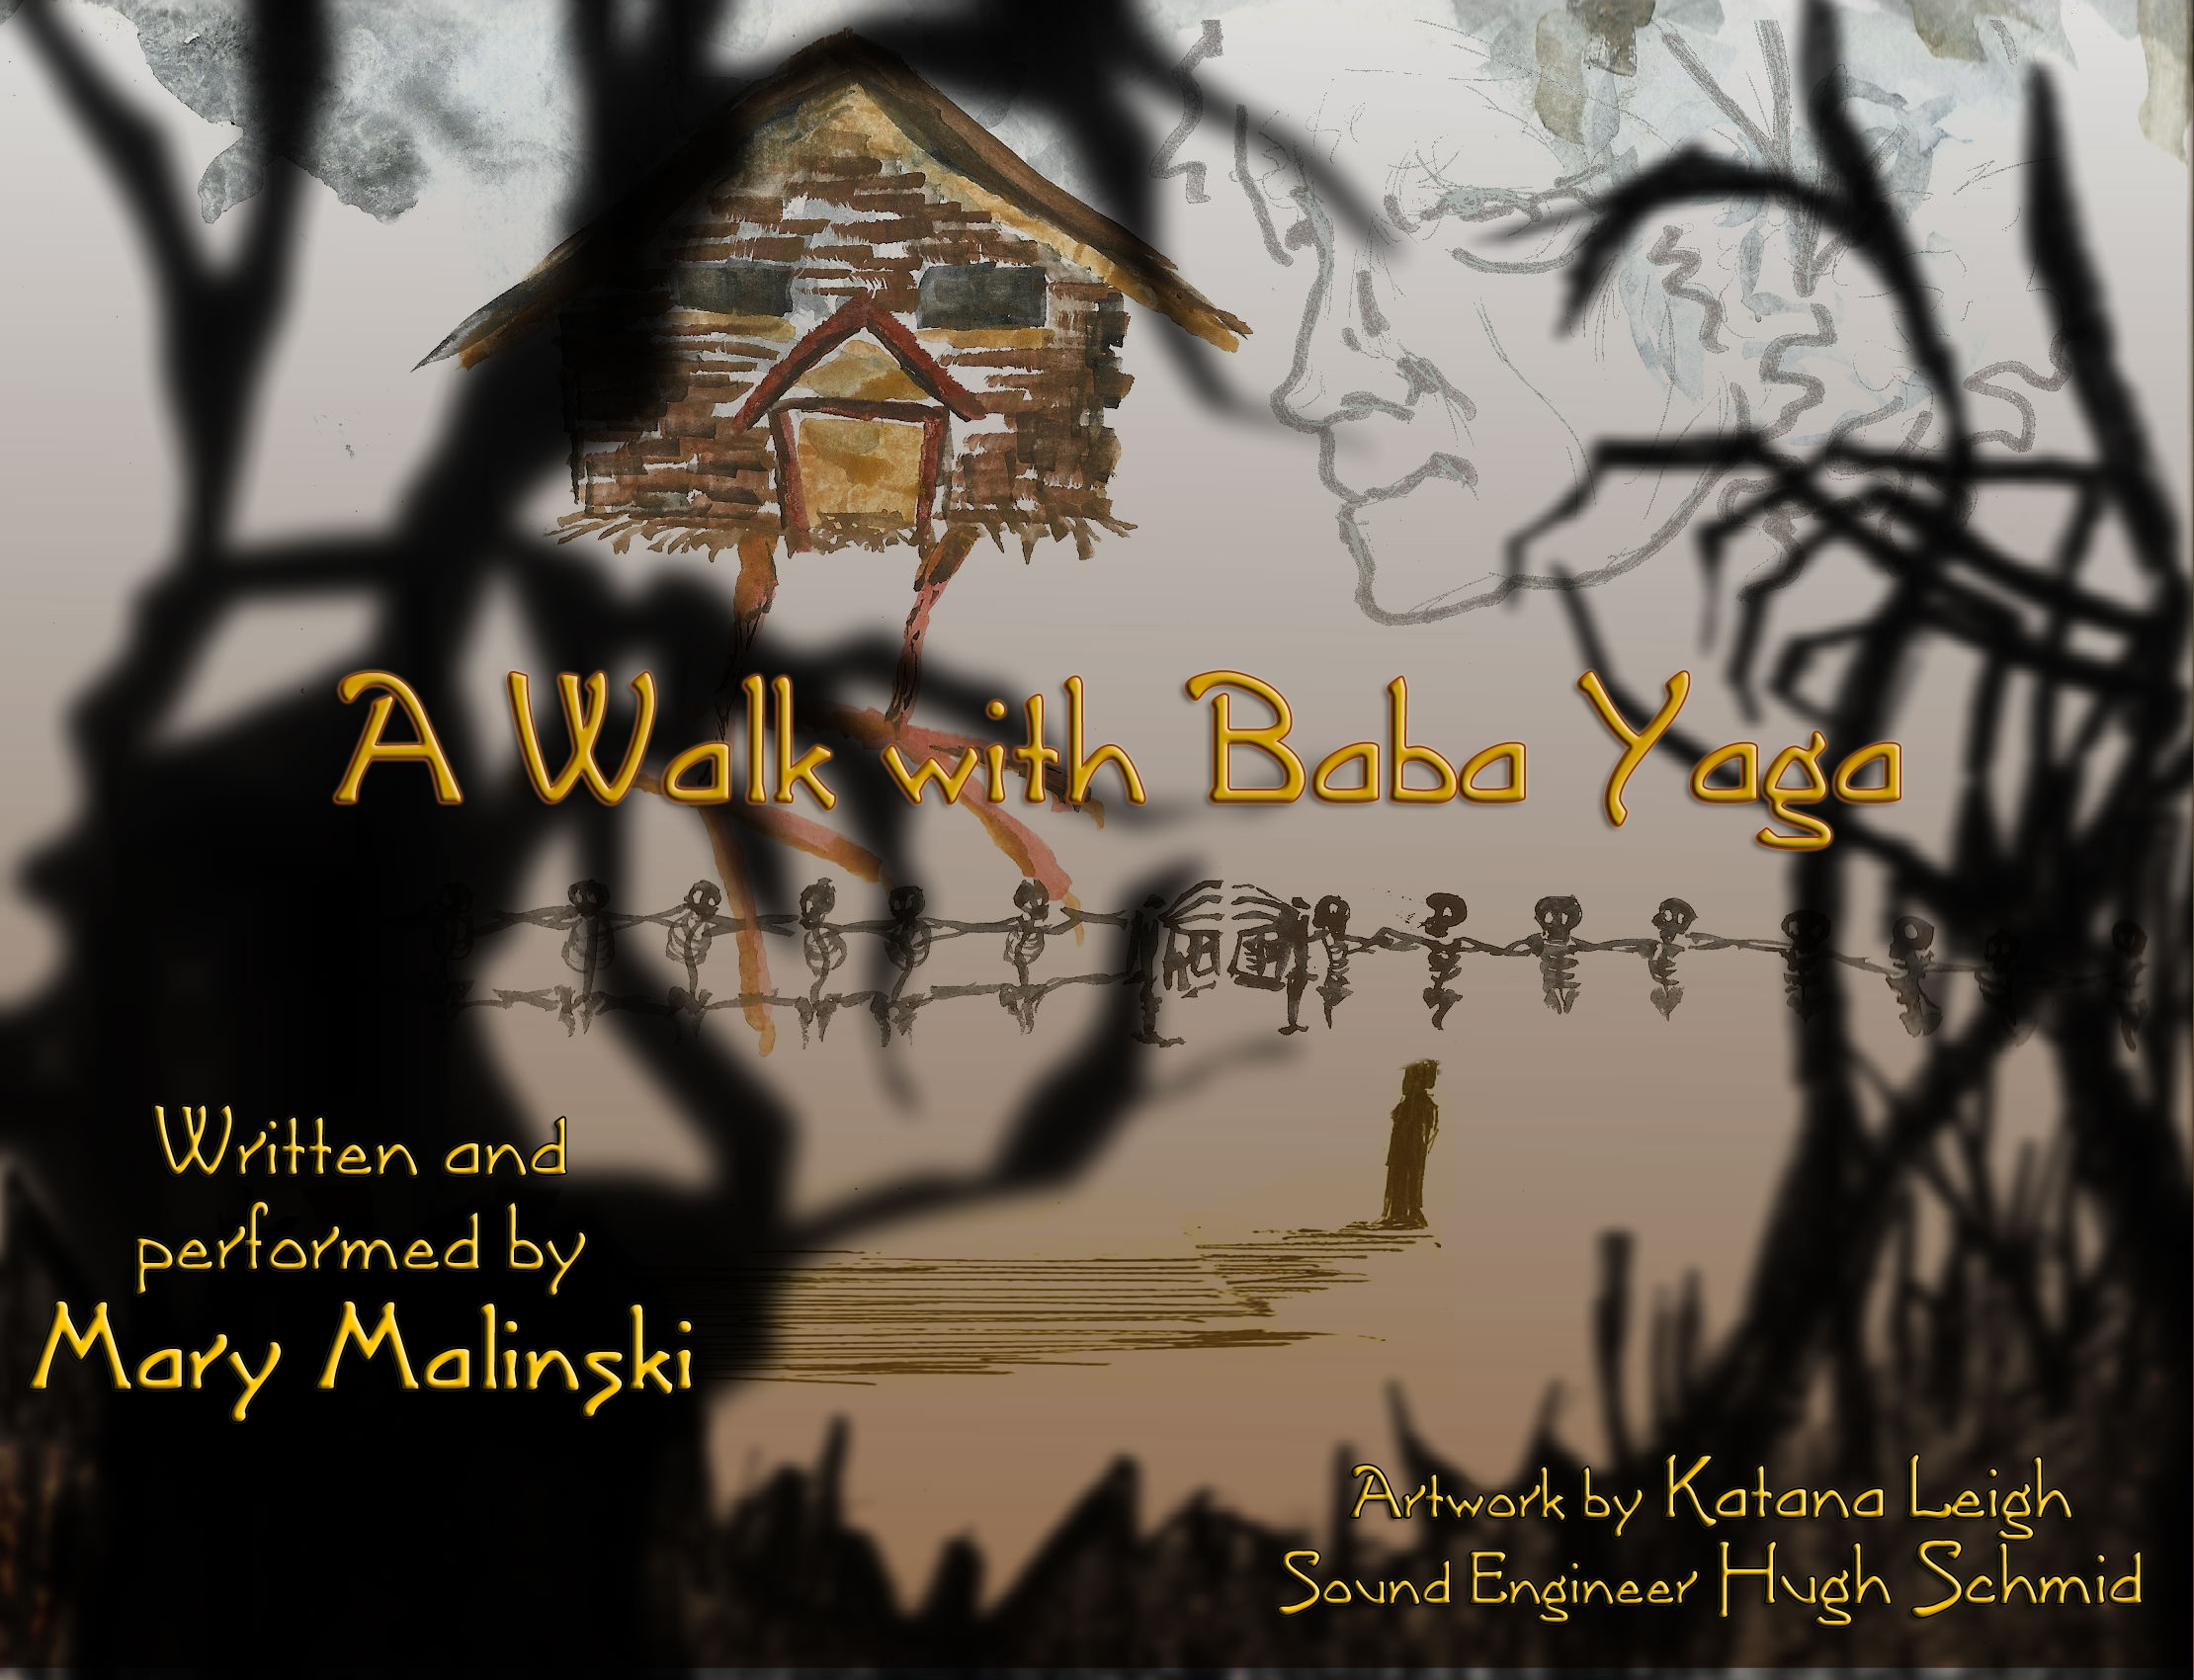 walk with baba yaga guided meditation